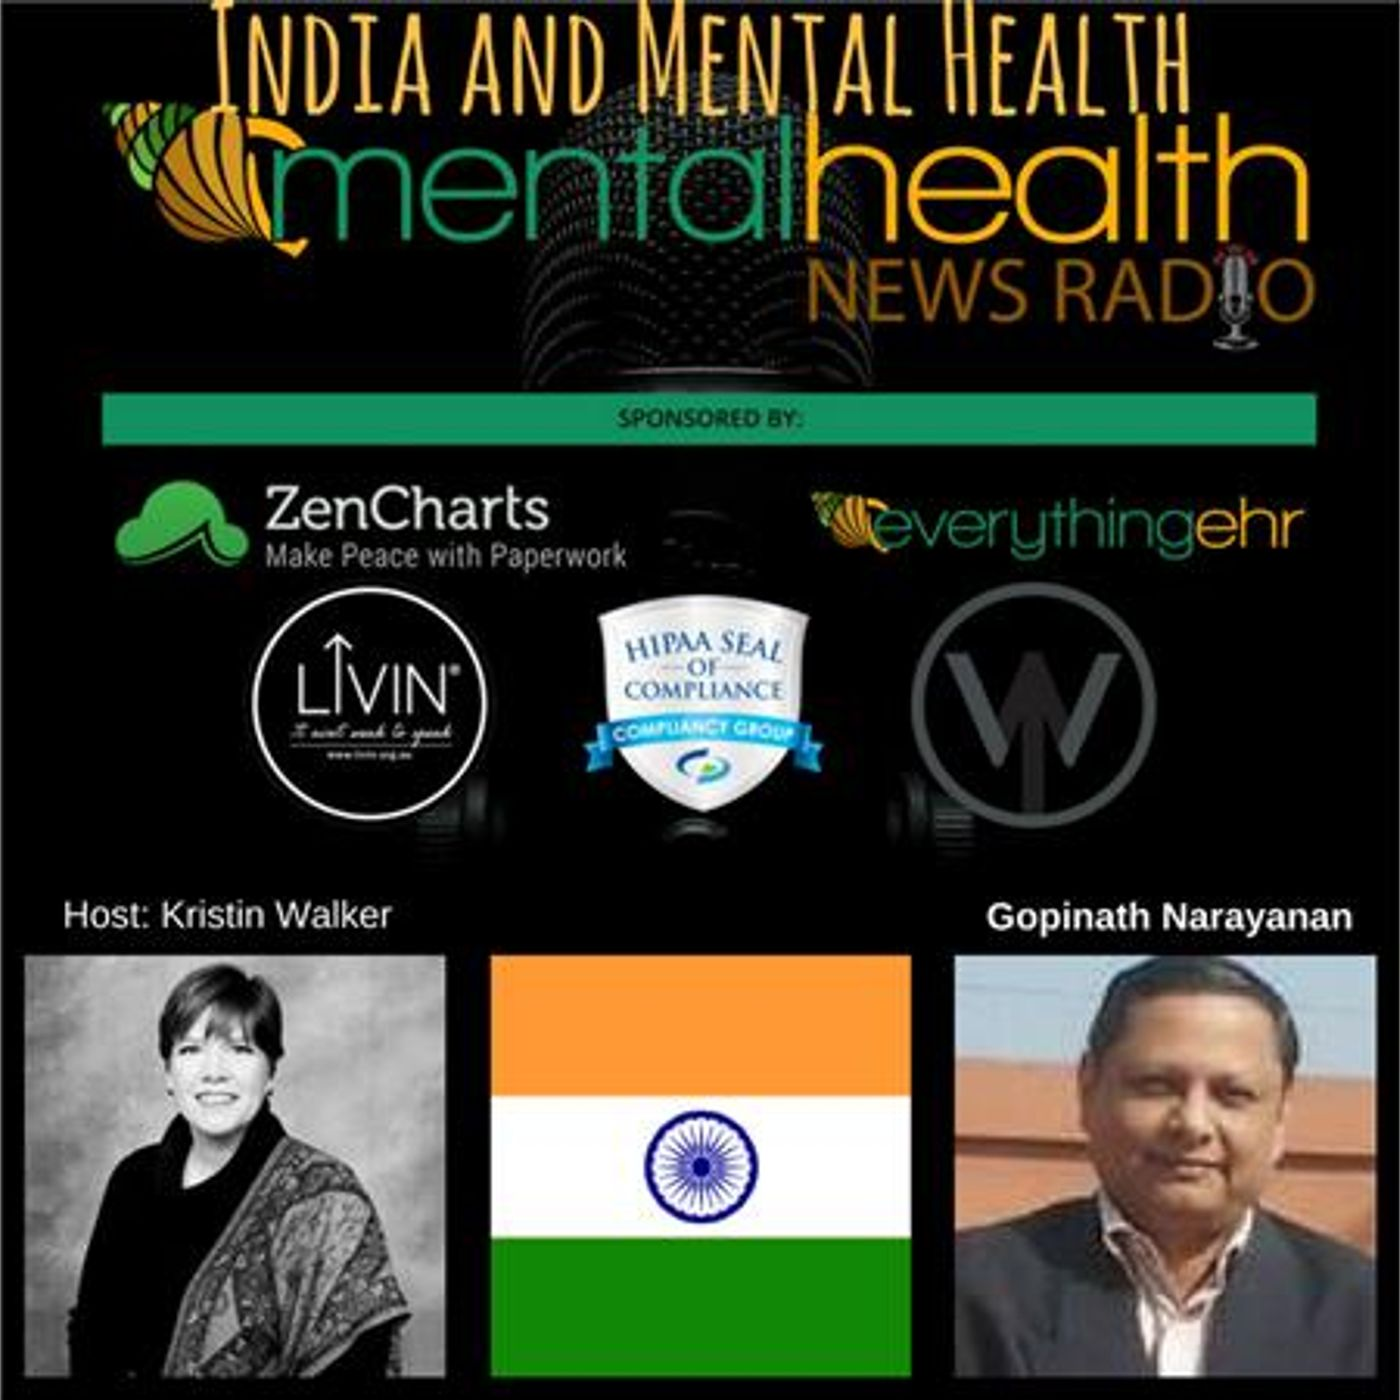 Mental Health News Radio - India and Mental Health: An Interview with Gopinath Narayanan